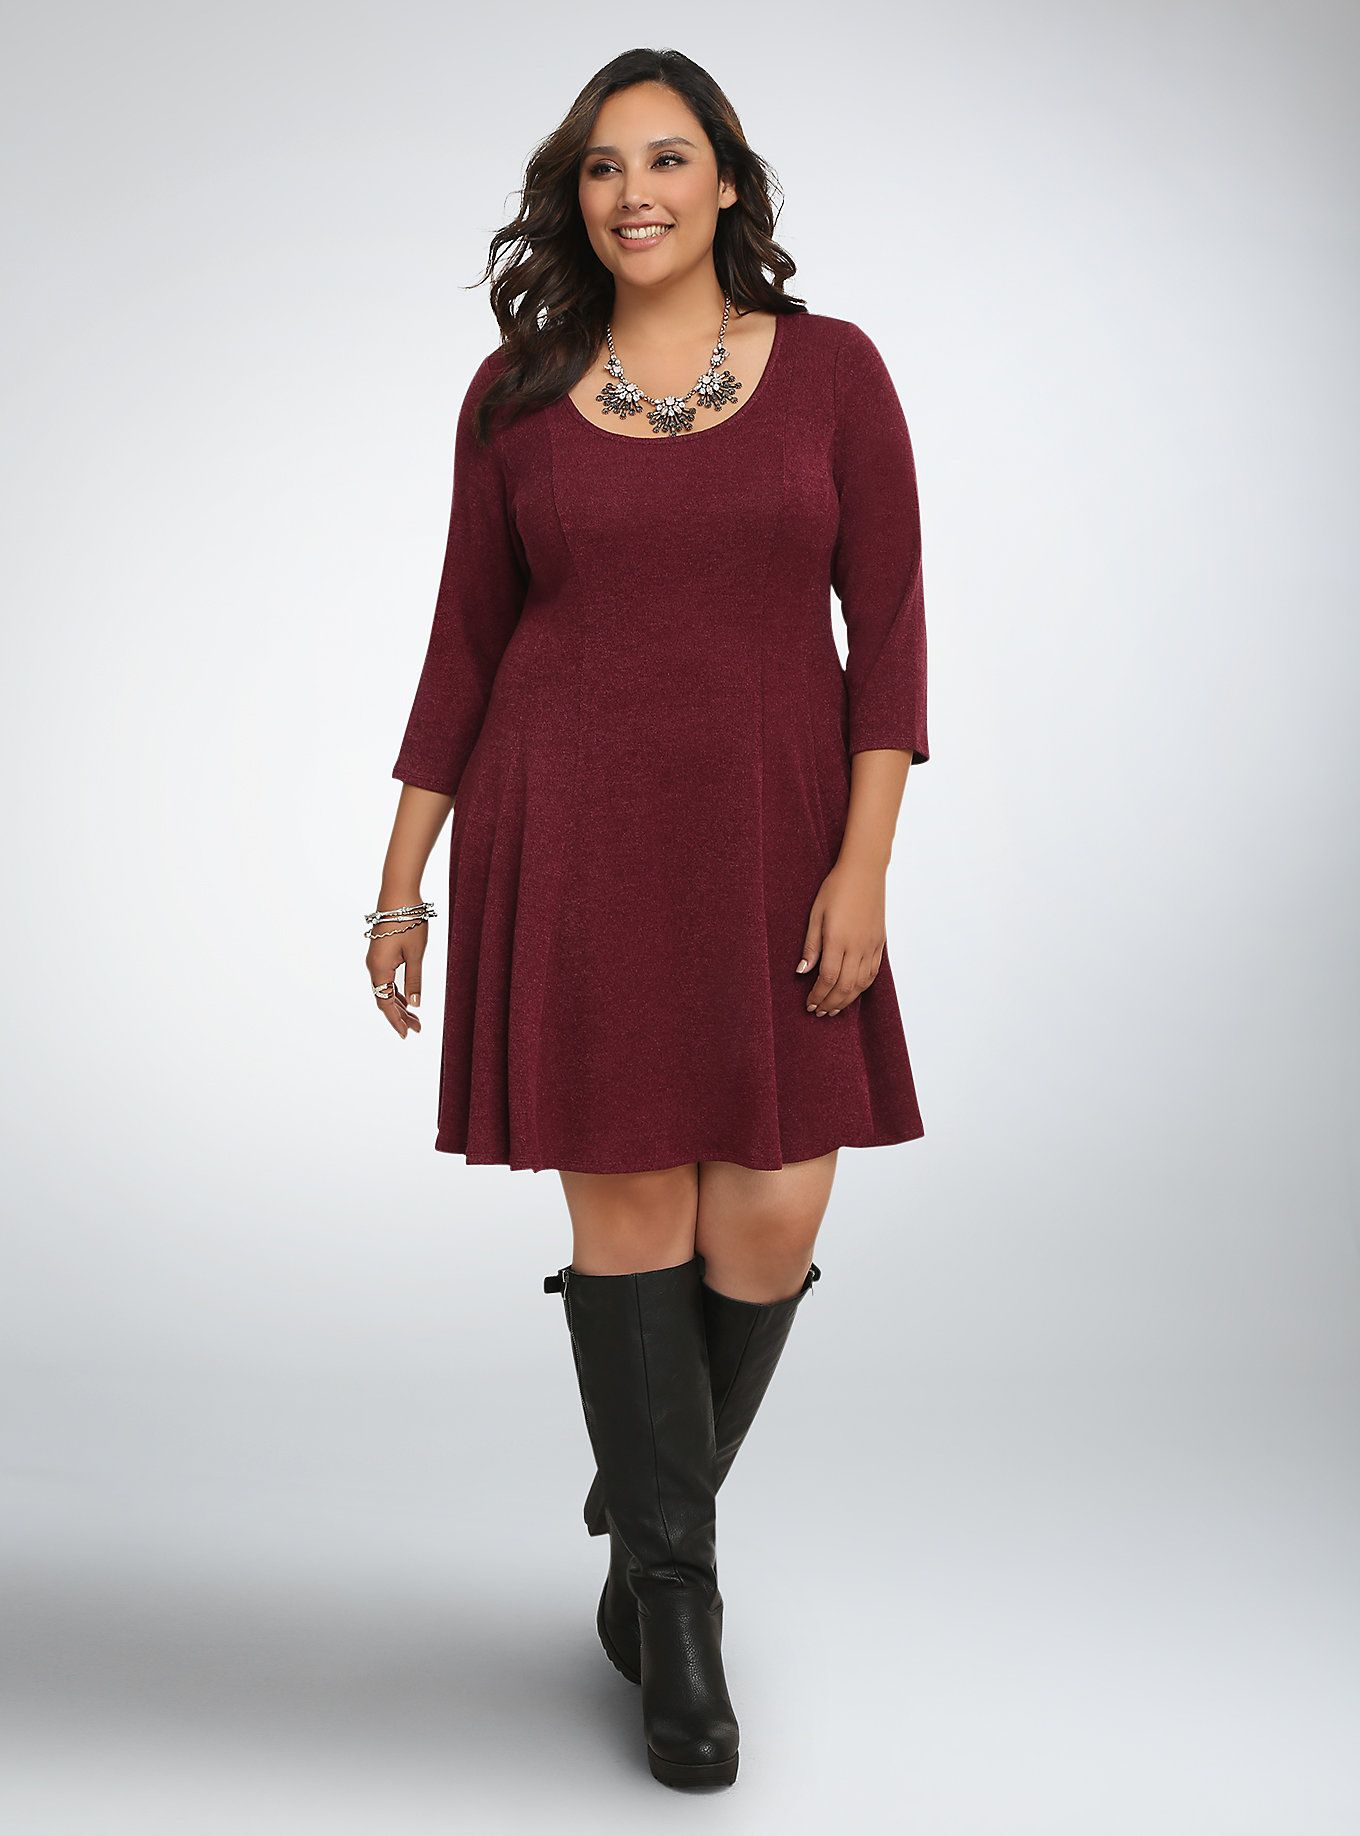 Knit Skater Sweater Dress | Dreamy Dress-up | Dresses, Plus size ...